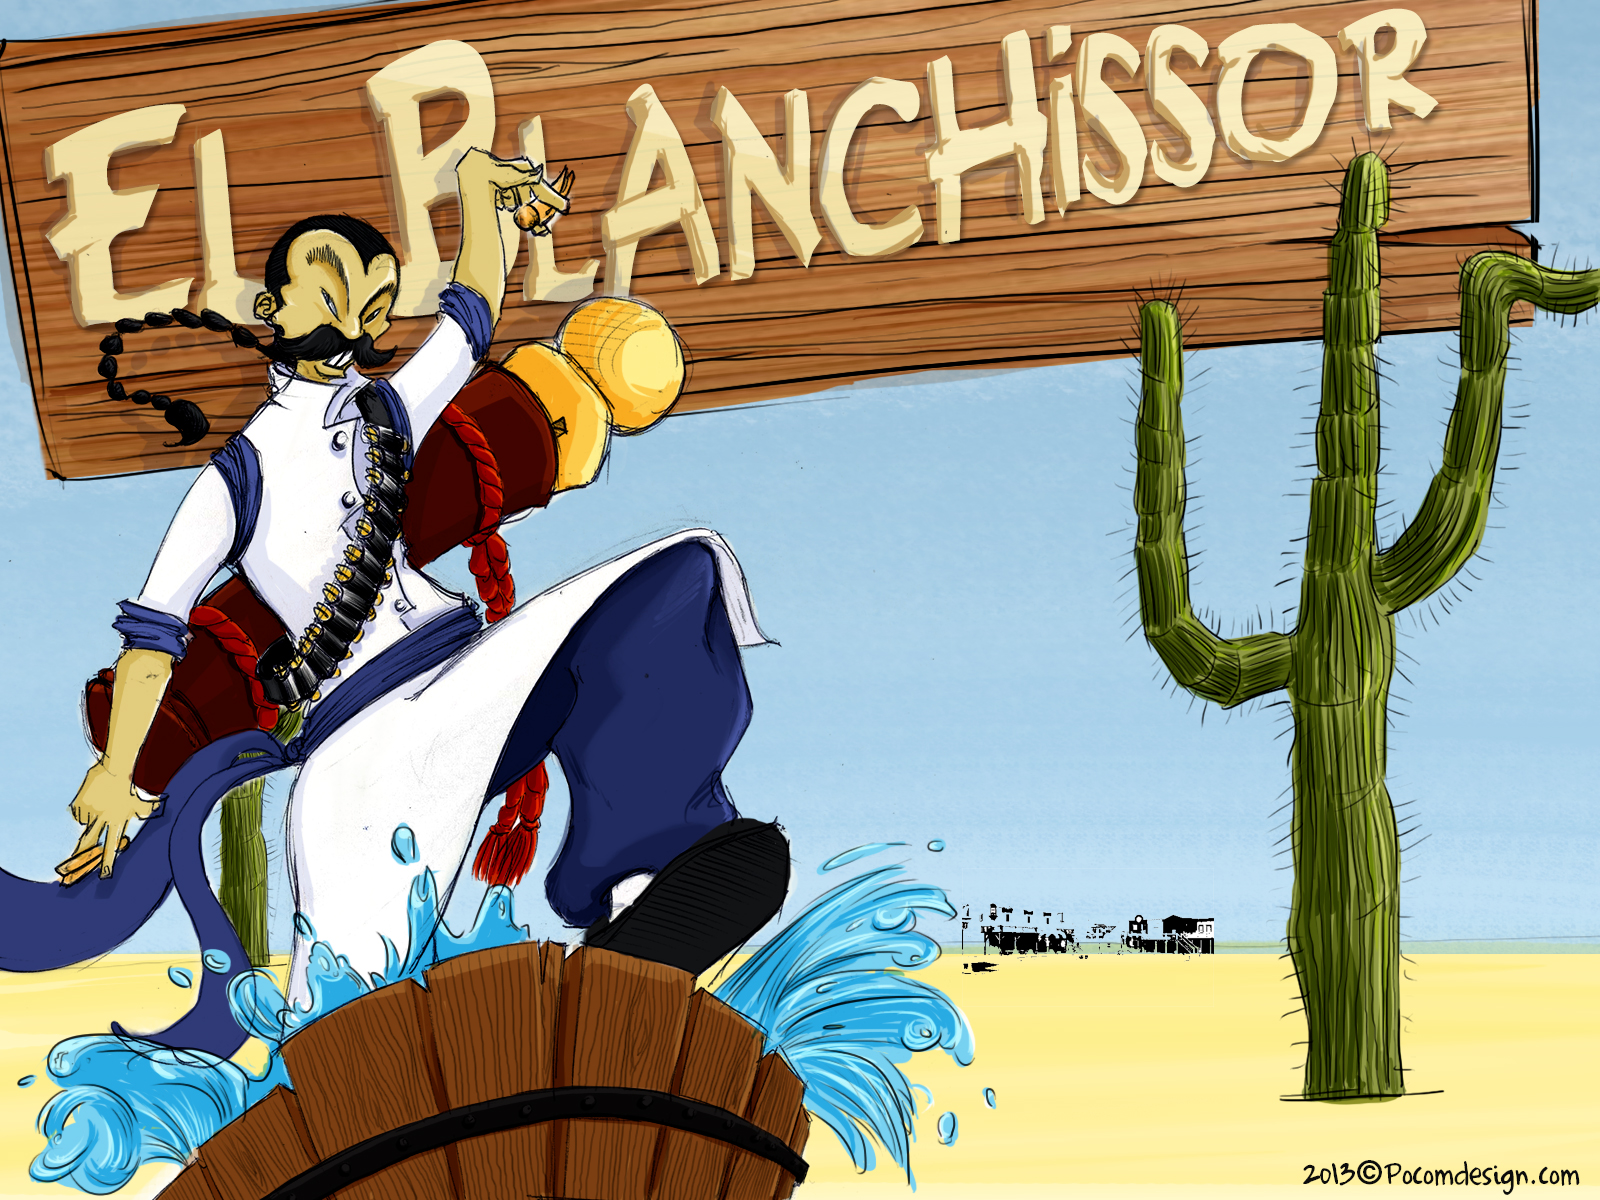 game design - el blanchissor